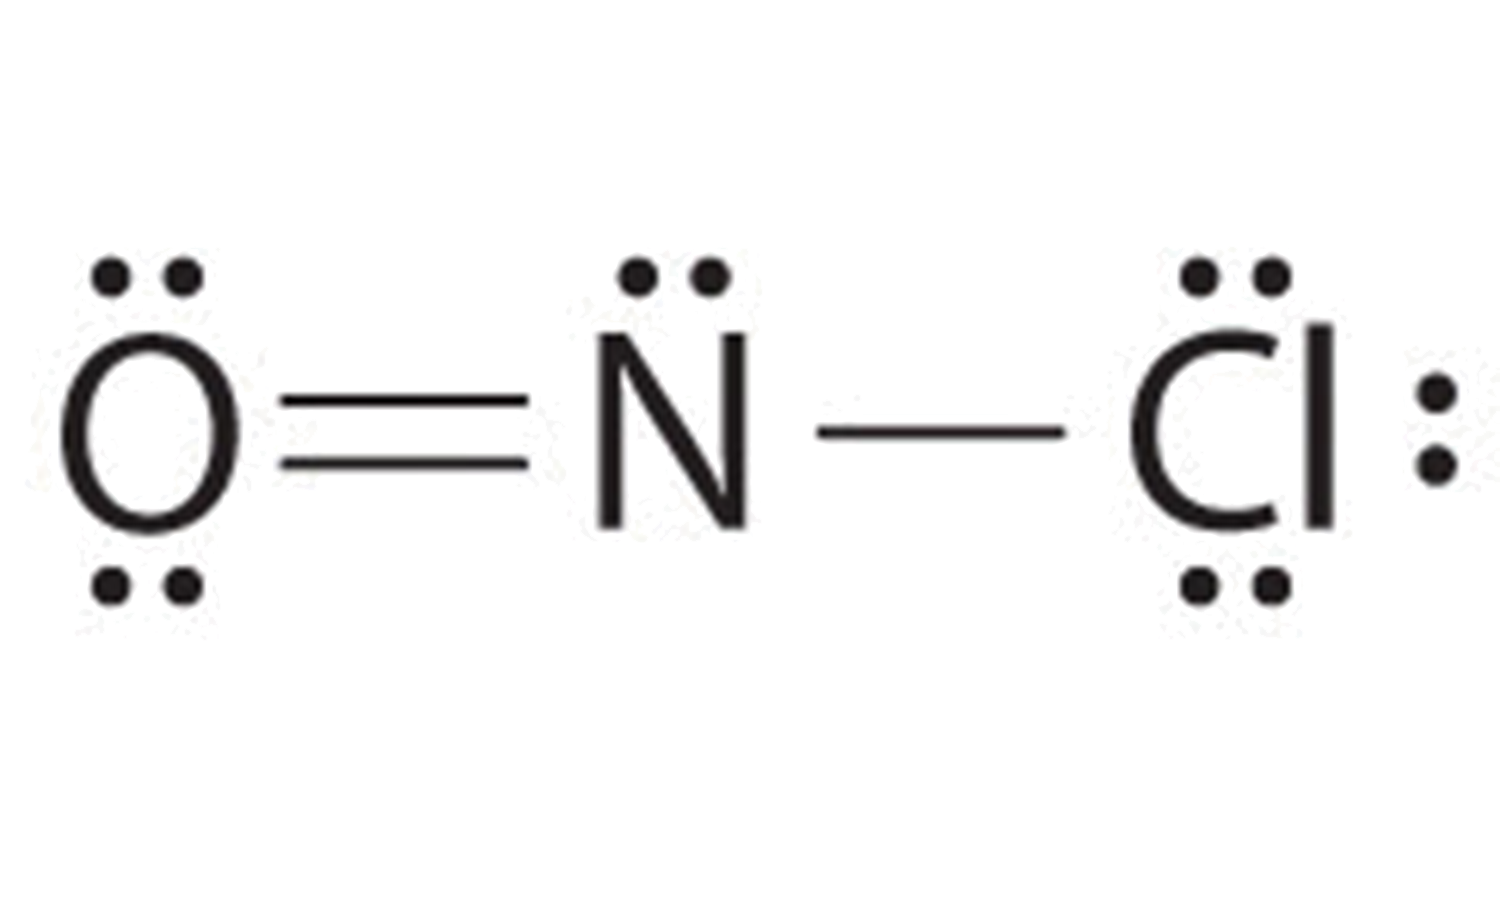 Final lewis dot structure for nitrosyl chloride,